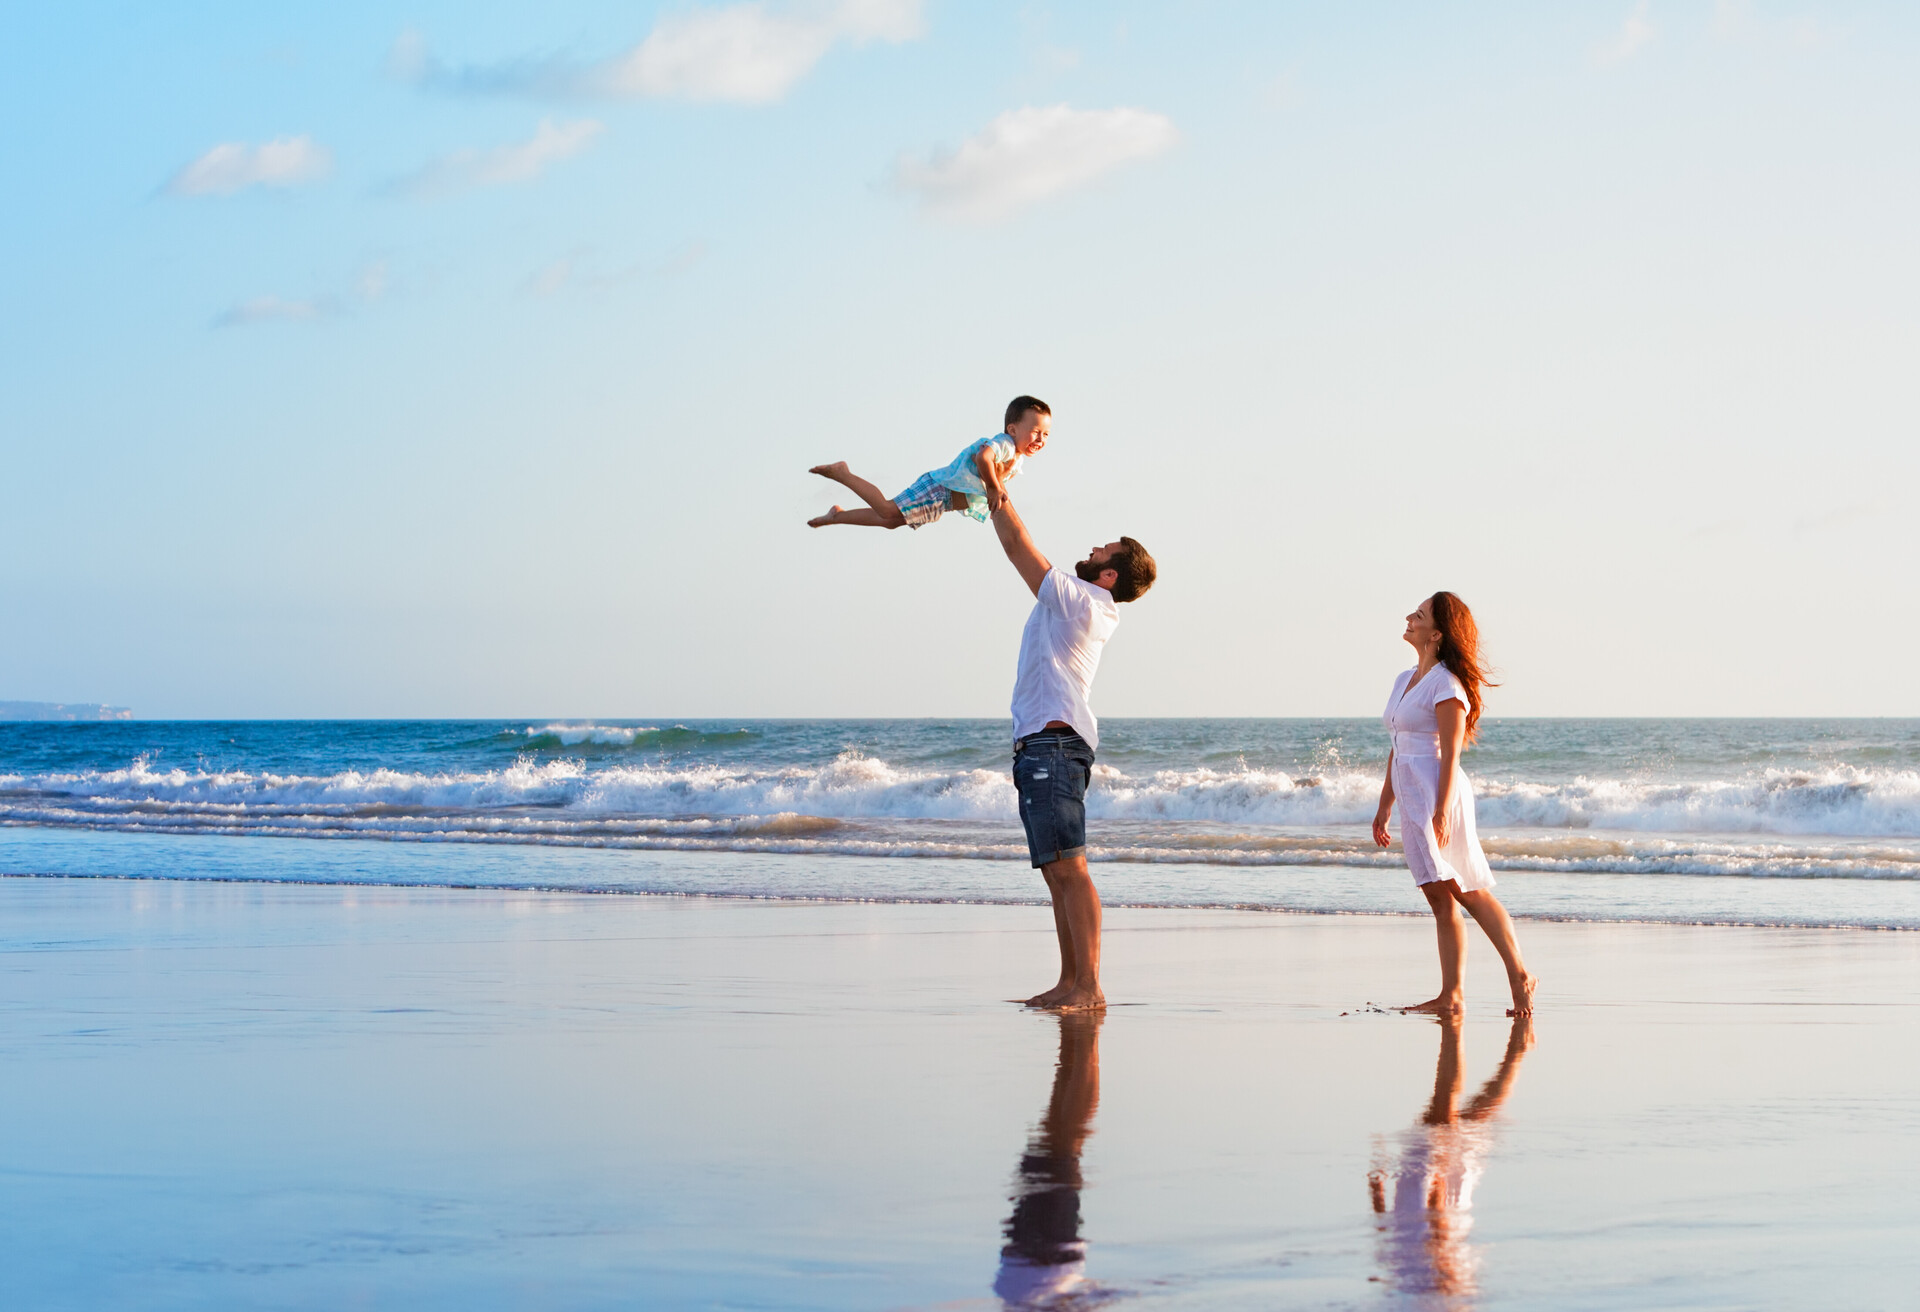 A young family enjoying their holidays on an island.